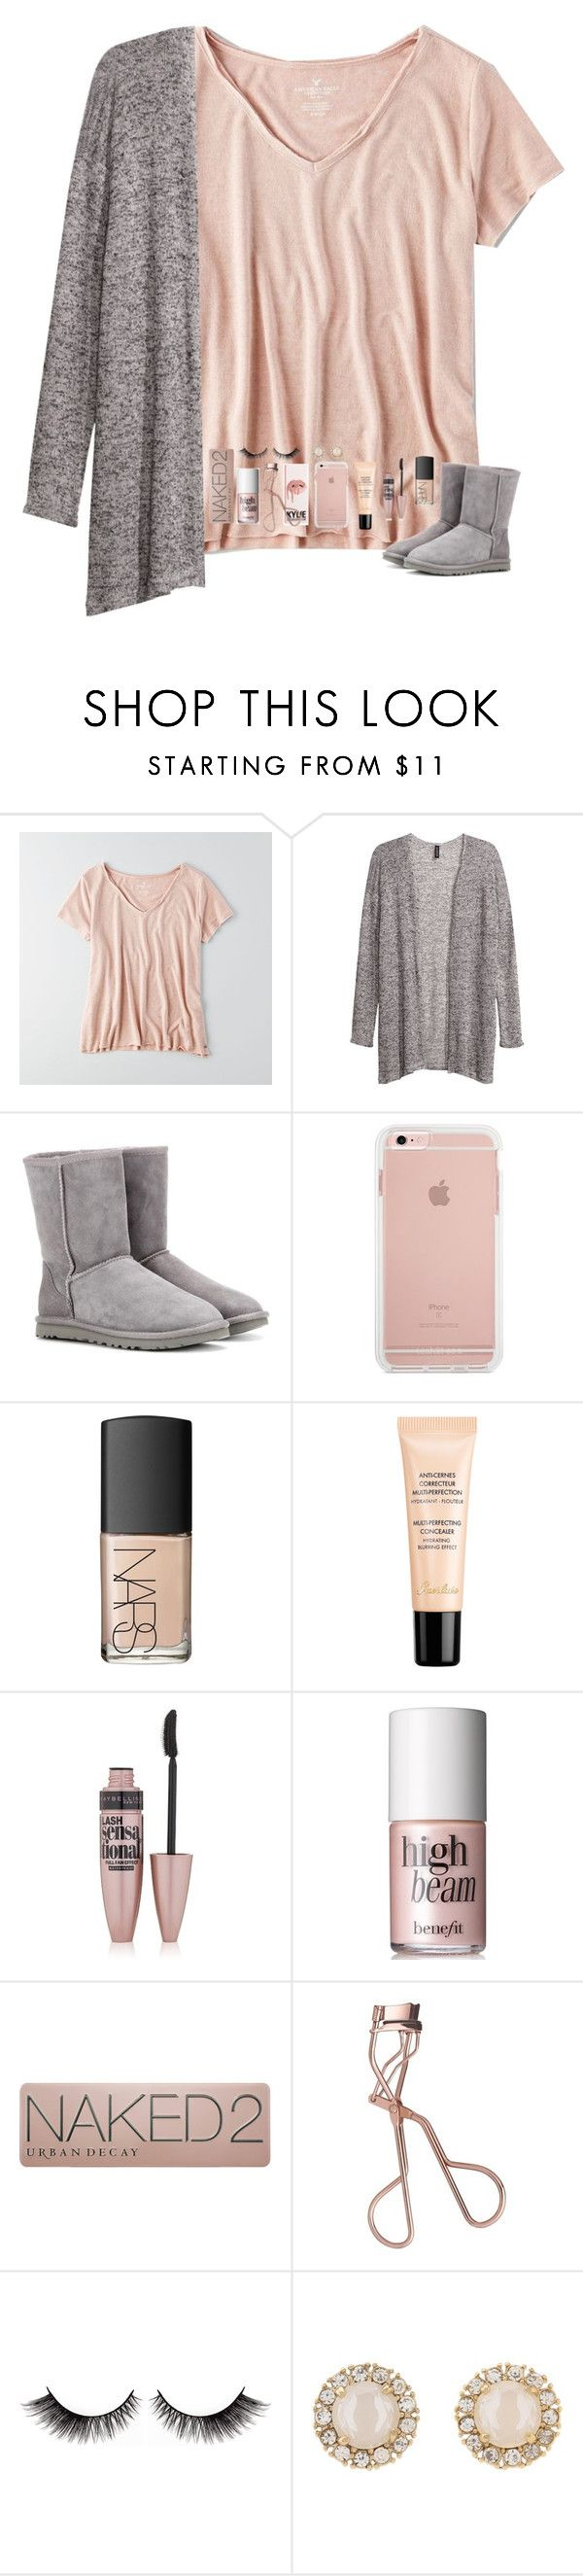 """Comment some active people for me to follow!"" by tropical-girl-xo ❤ liked on Polyvore featuring American Eagle Outfitters, H&M, UGG Australia, NARS Cosmetics, Guerlain, Maybelline, Benefit, Urban Decay, Charlotte Tilbury and Kate Spade"